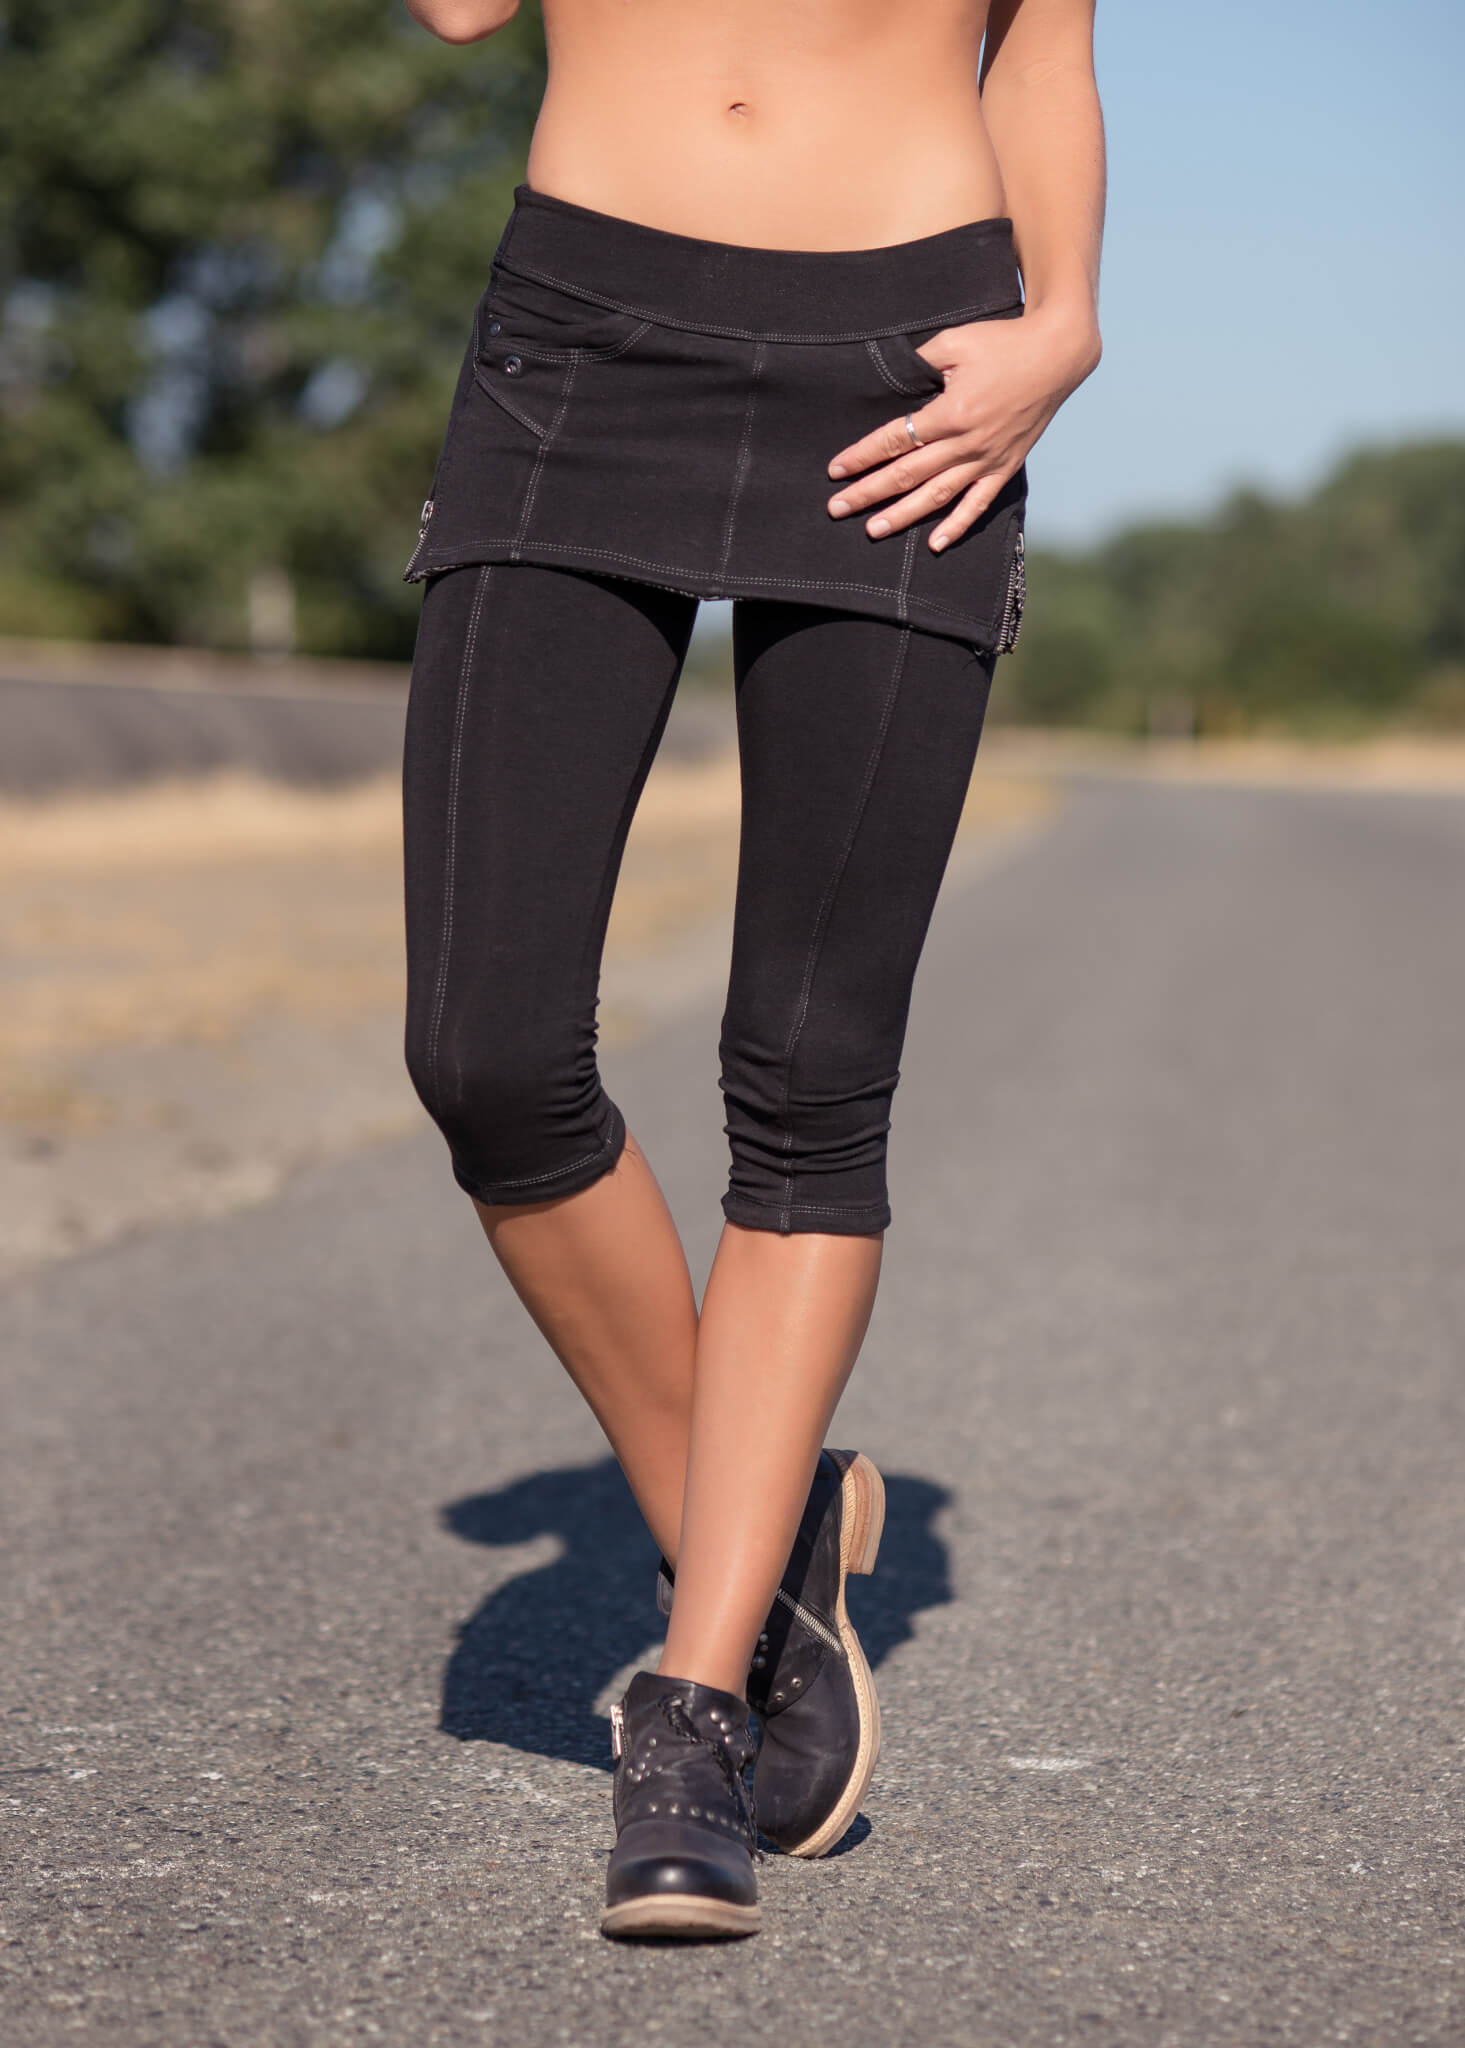 Organic cotton and bamboo 3/4 leggings with an attached skirt on a model, low rise by Nomads Hemp Wear